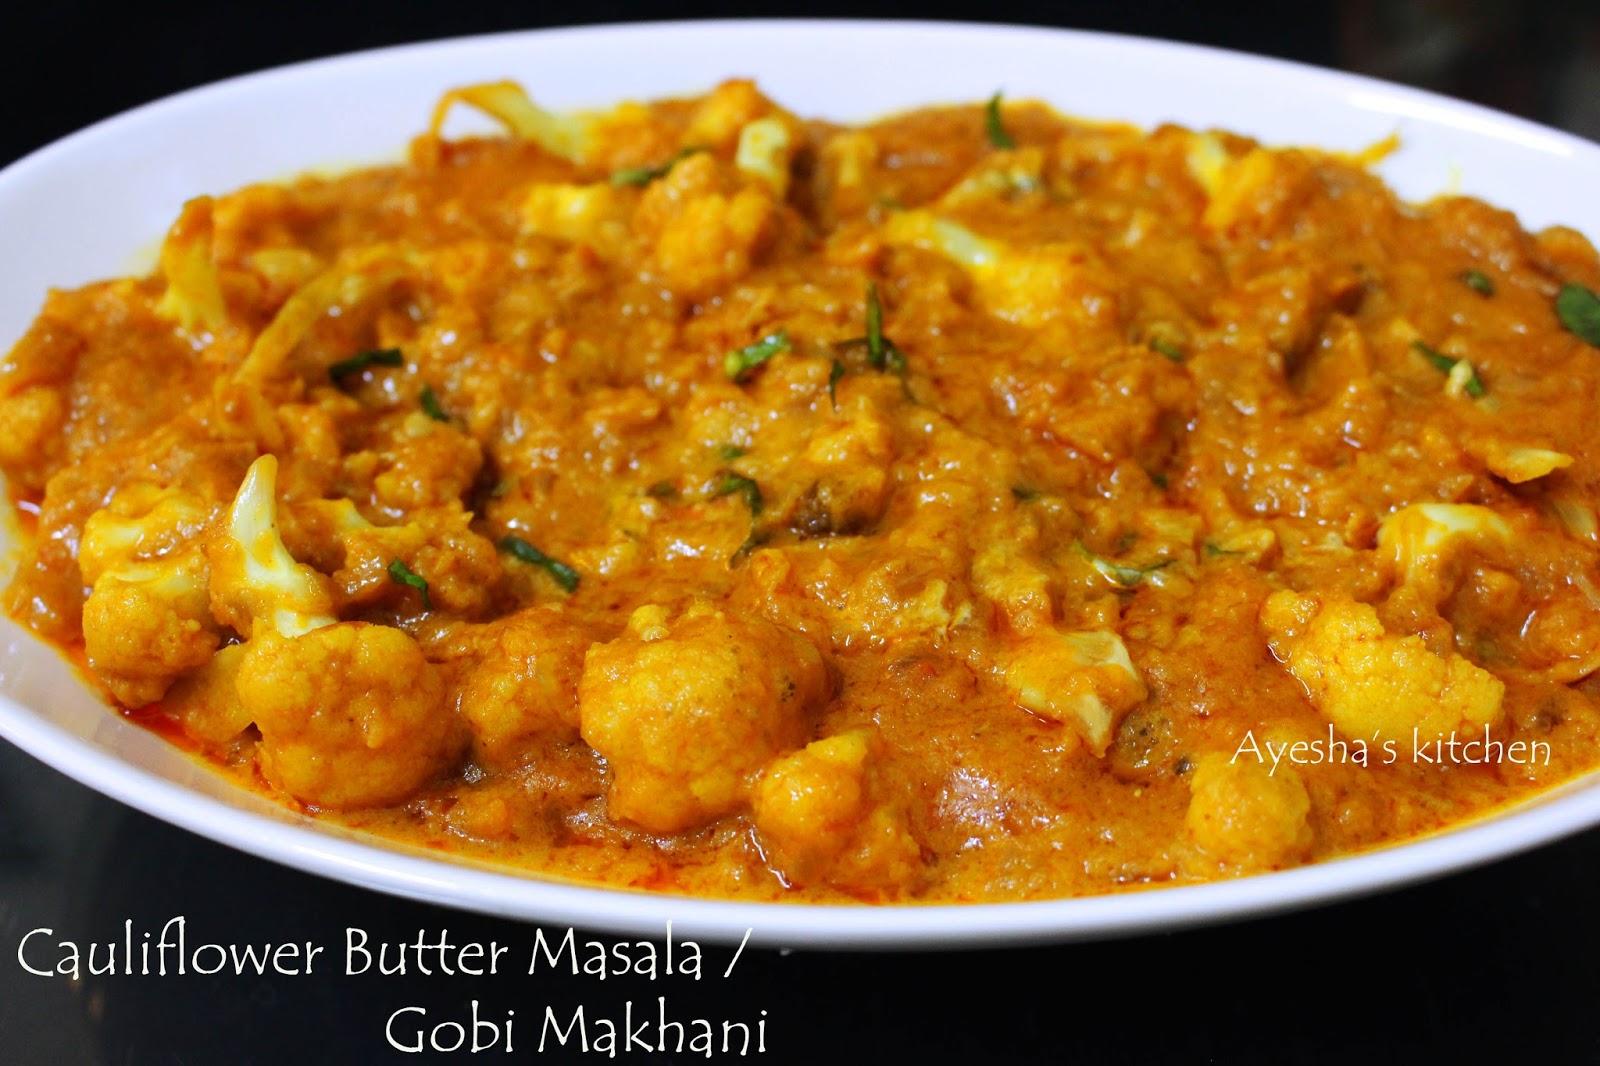 Gobi makhani cauliflower butter masala how to make basic gobi makhani cauliflower makhani vegetable side dishes gobi gravy forumfinder Gallery